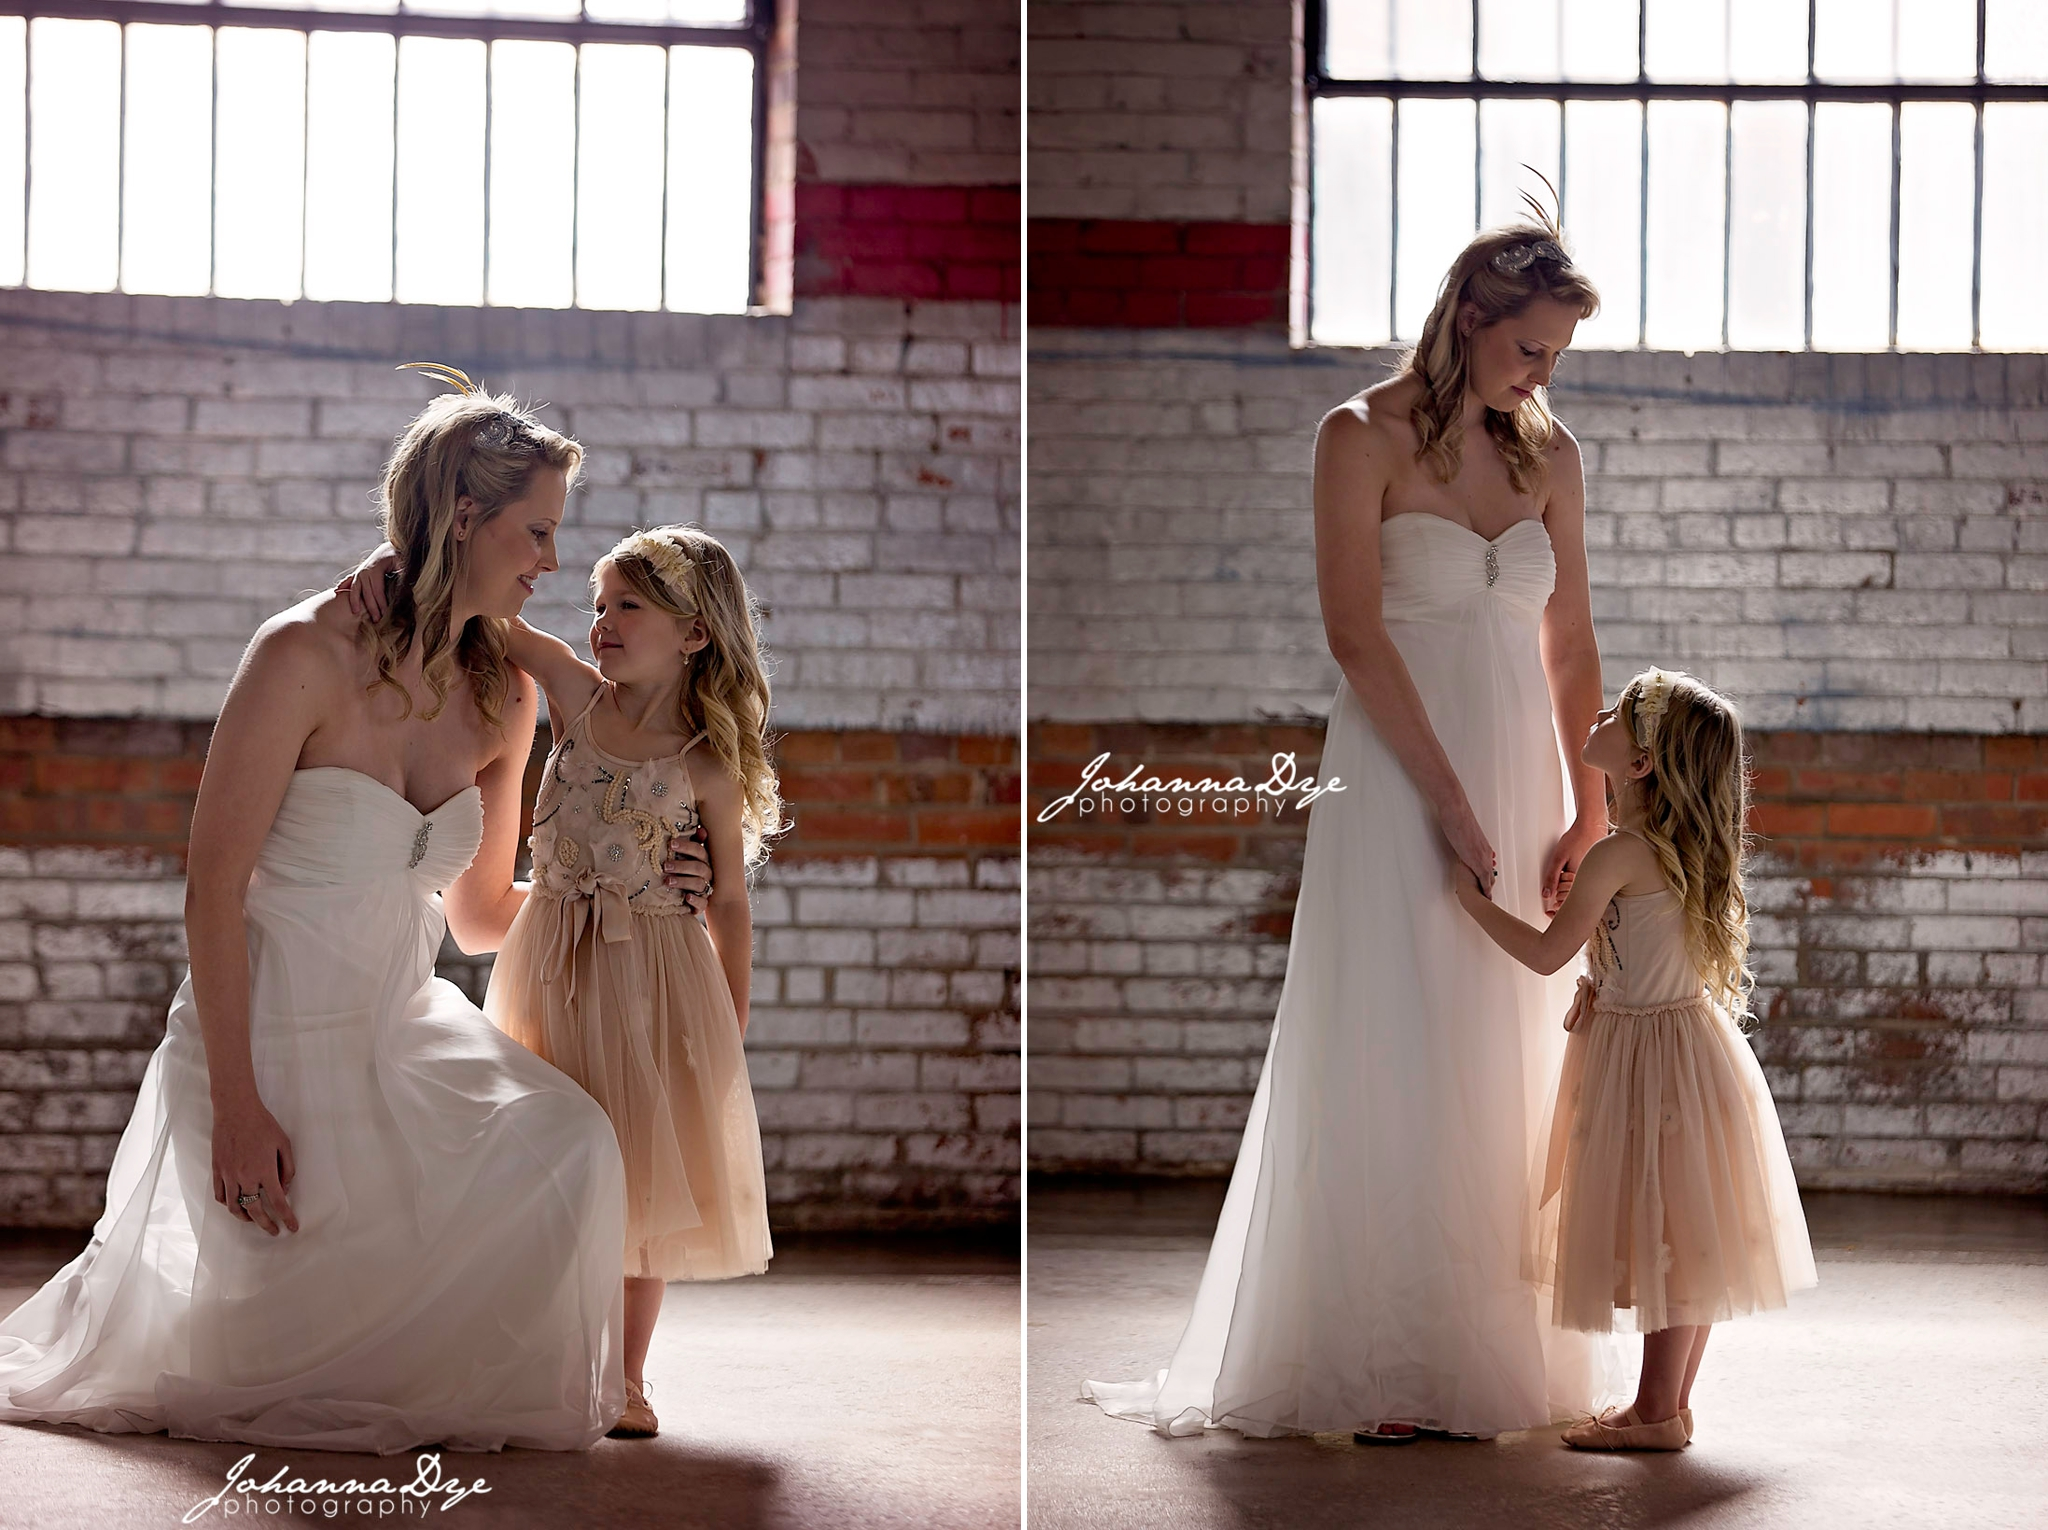 Johanna Dye Photography is a Fayetteville North Carolina Wedding Photographer that offers Bridal Photography and Flower Girl Photoshoots